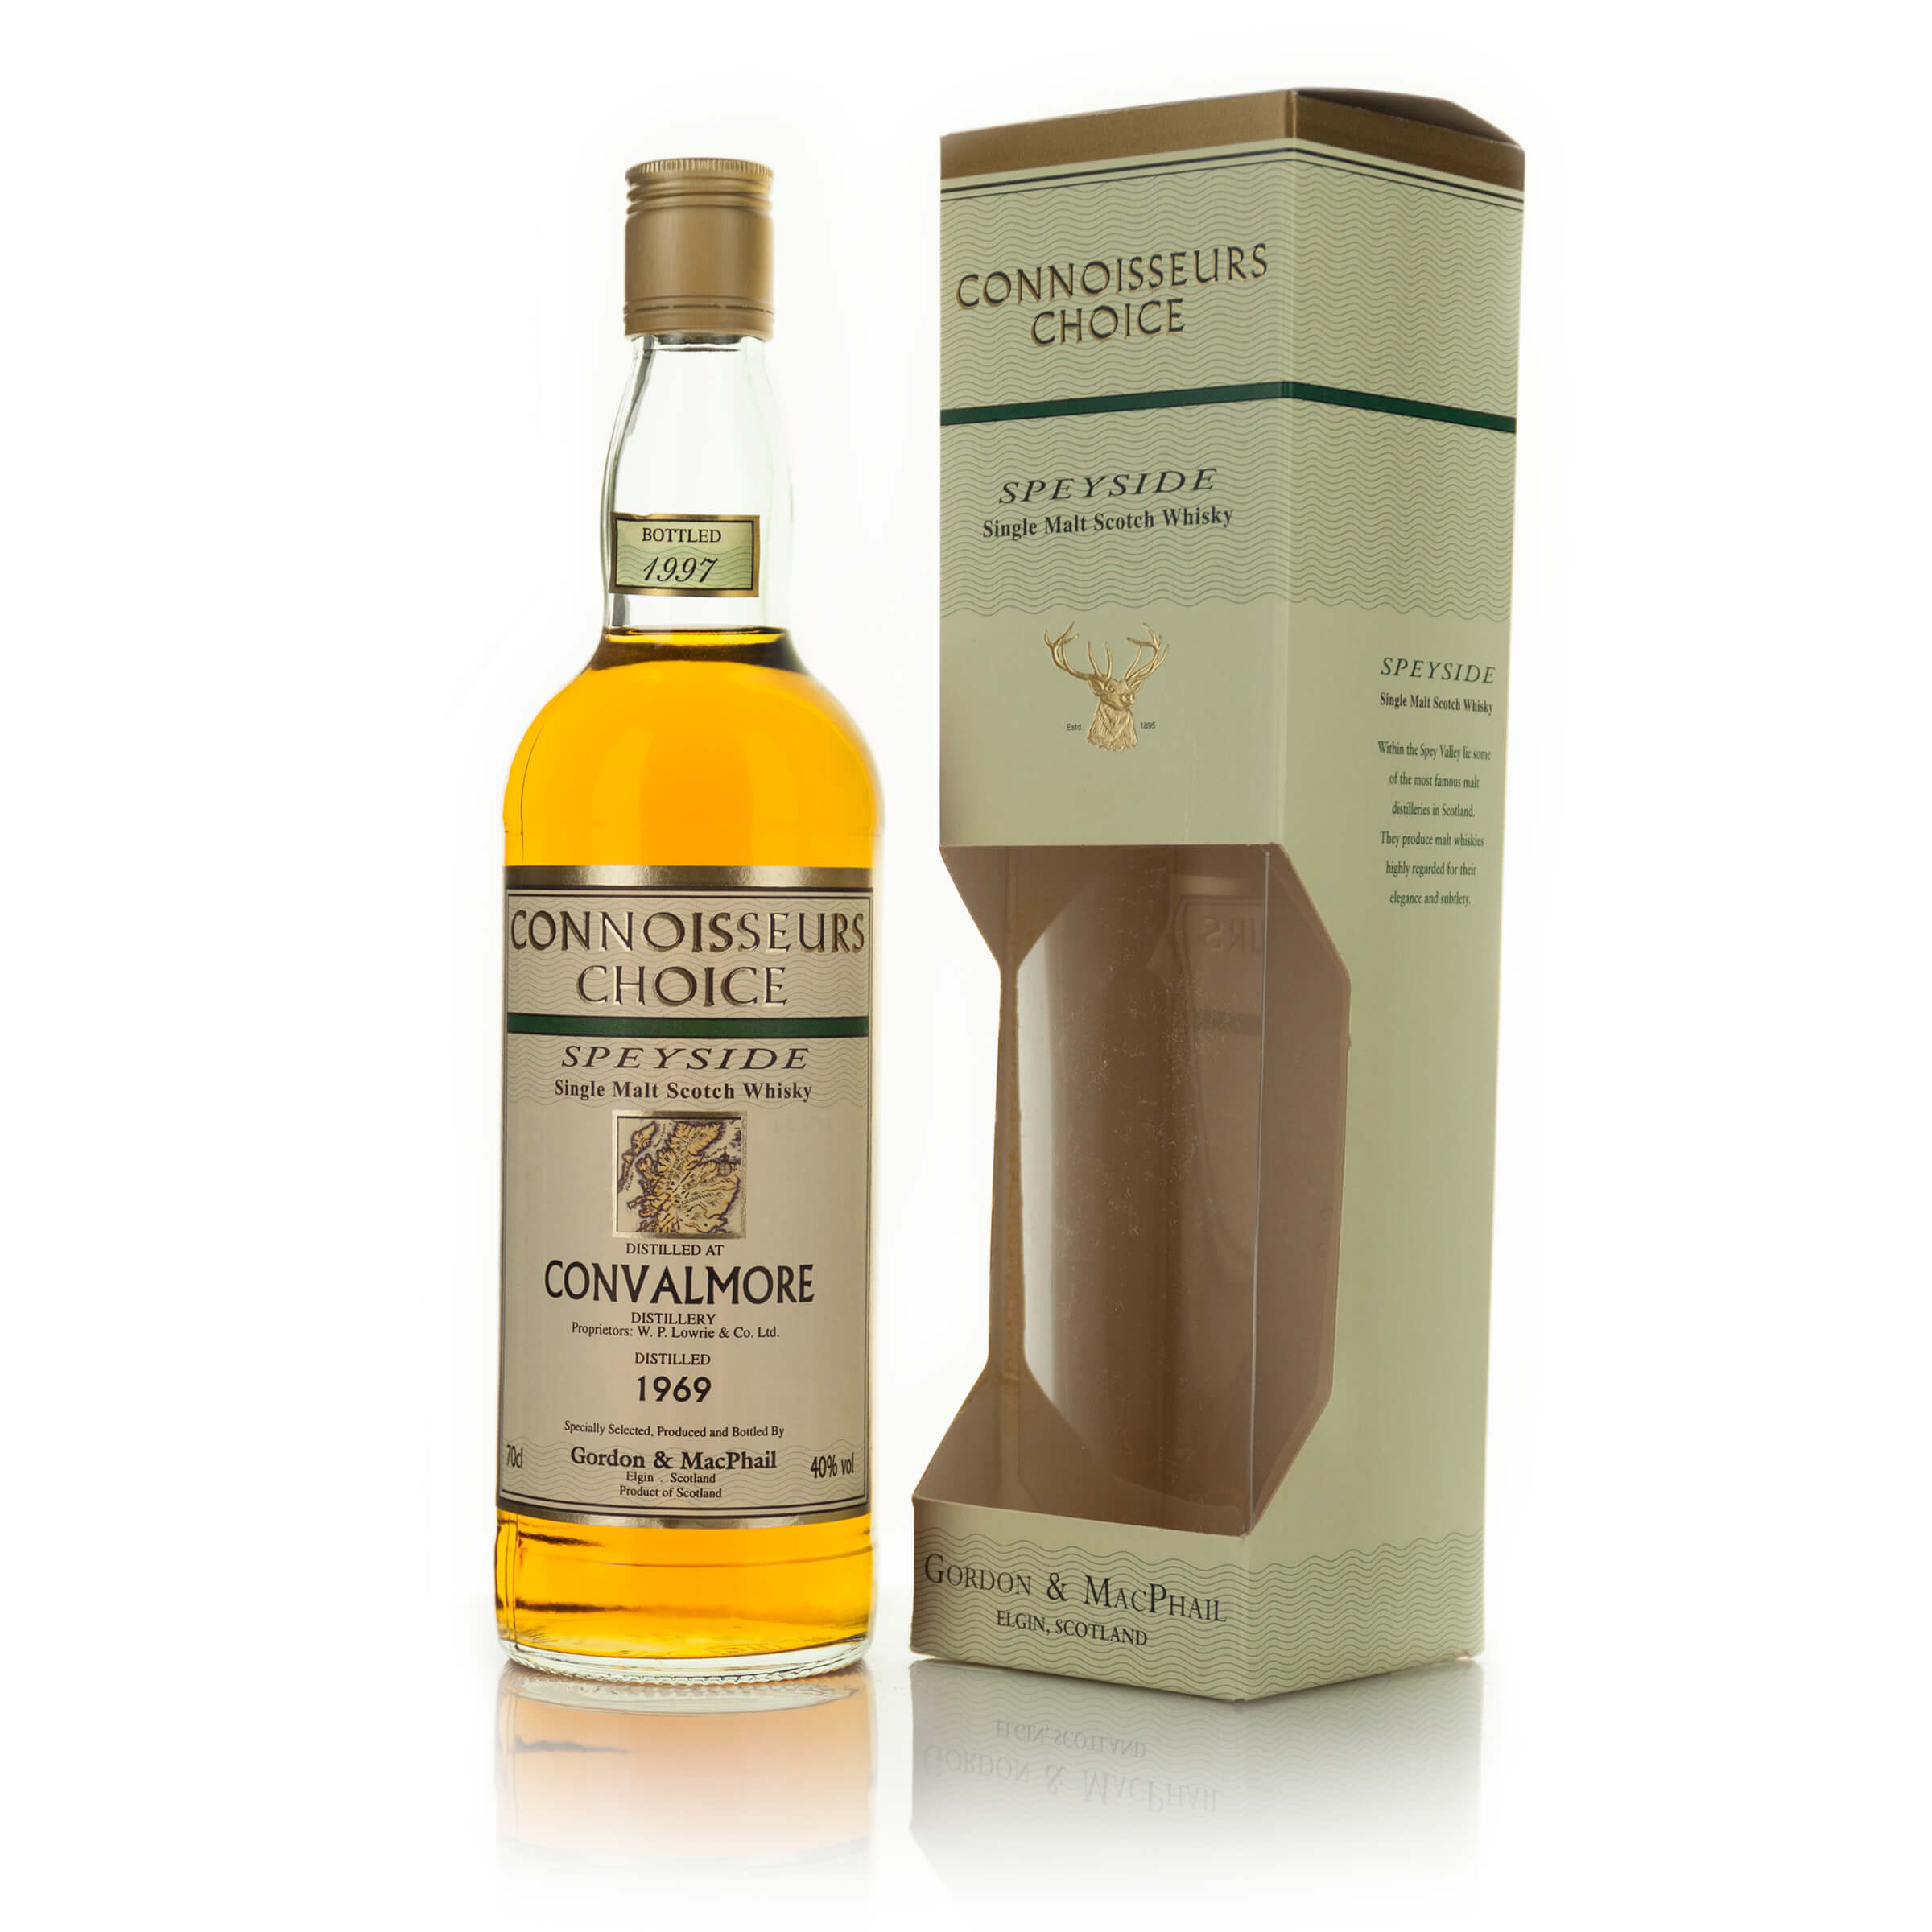 CONVALMORE SINGLE MALT SCOTCH WHISKY 28 YEARS (ONE 70 CL)